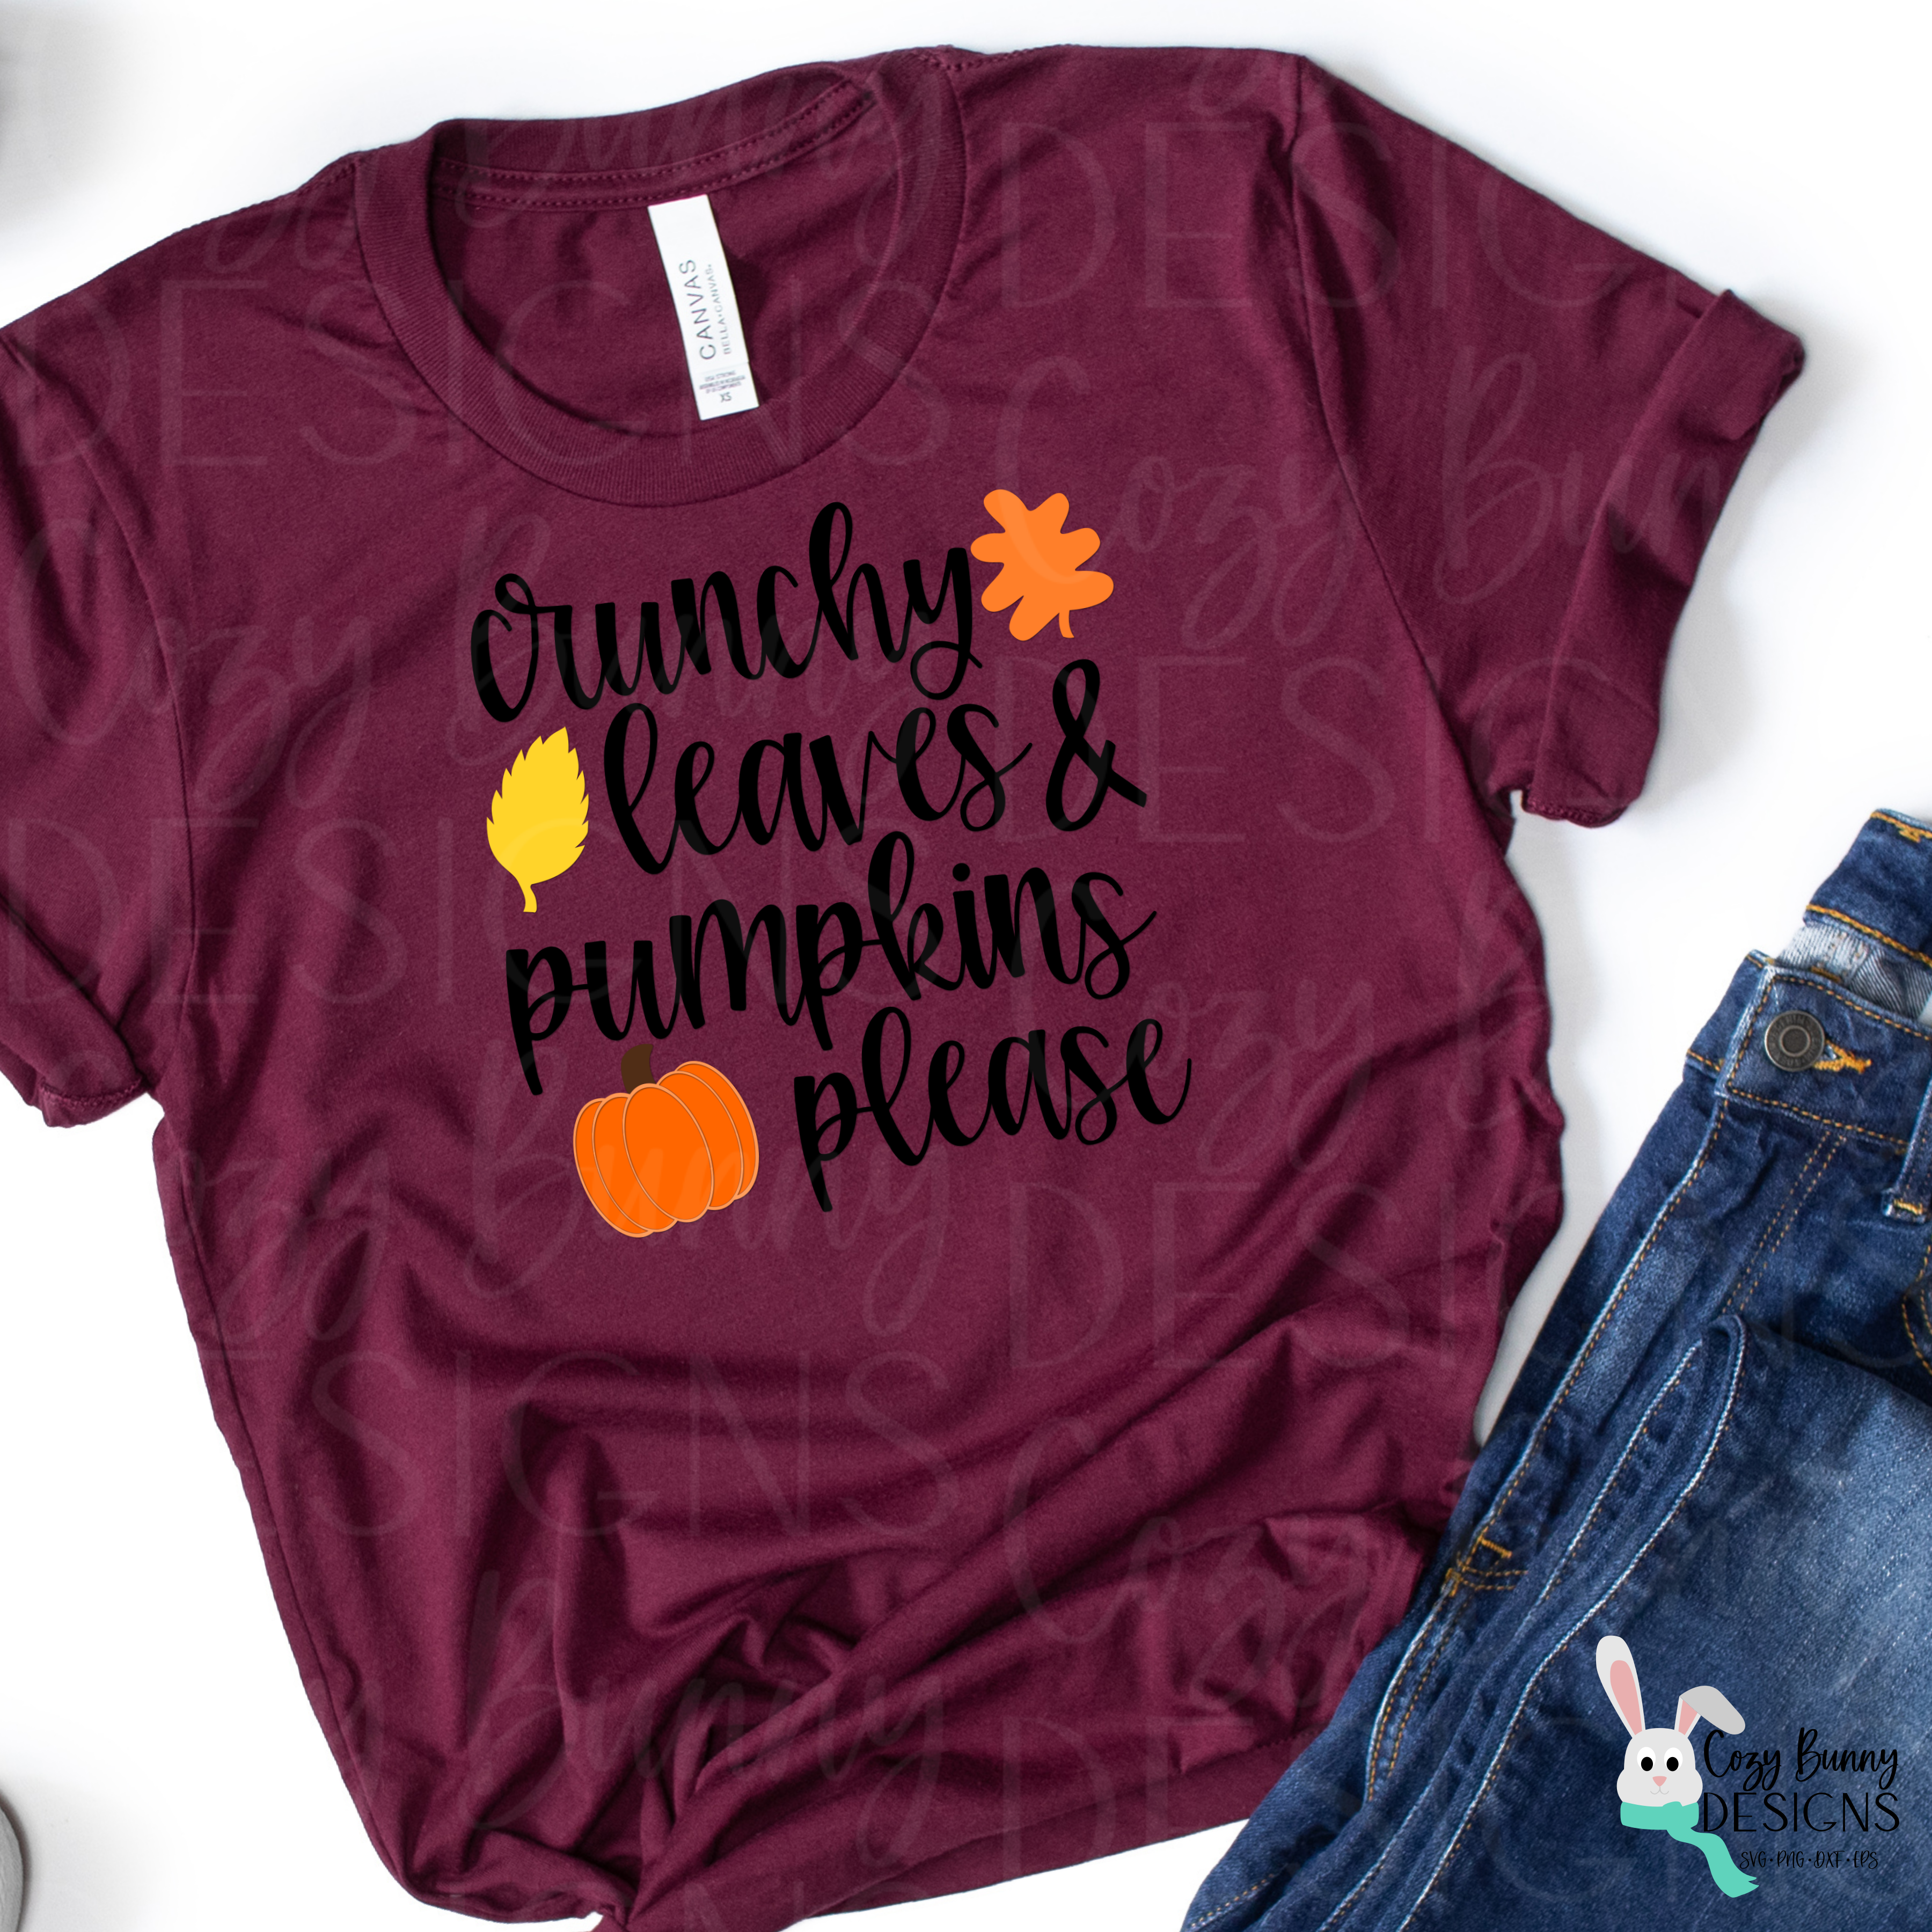 Read more about the article Crunchy Leaves & Pumpkins Please – Free Fall SVG